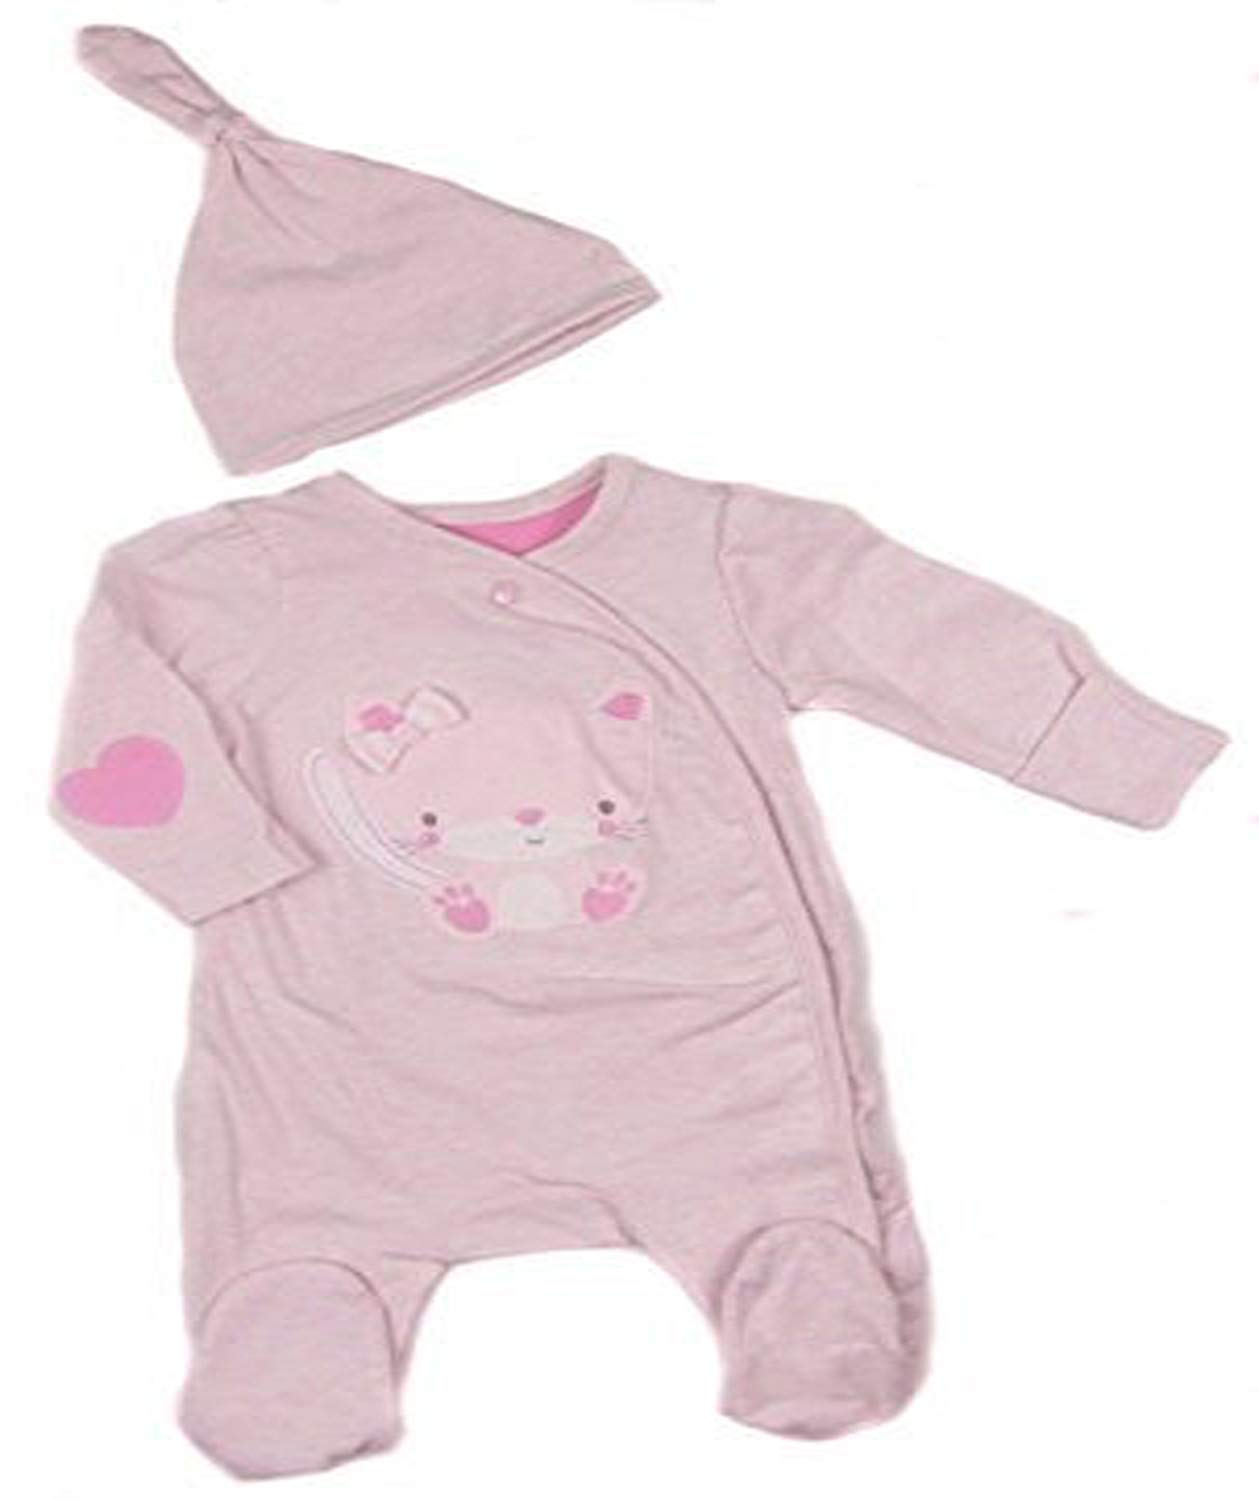 Baby Girls Sleepsuit  Babygrow and Cradle Cap OR Headband Set